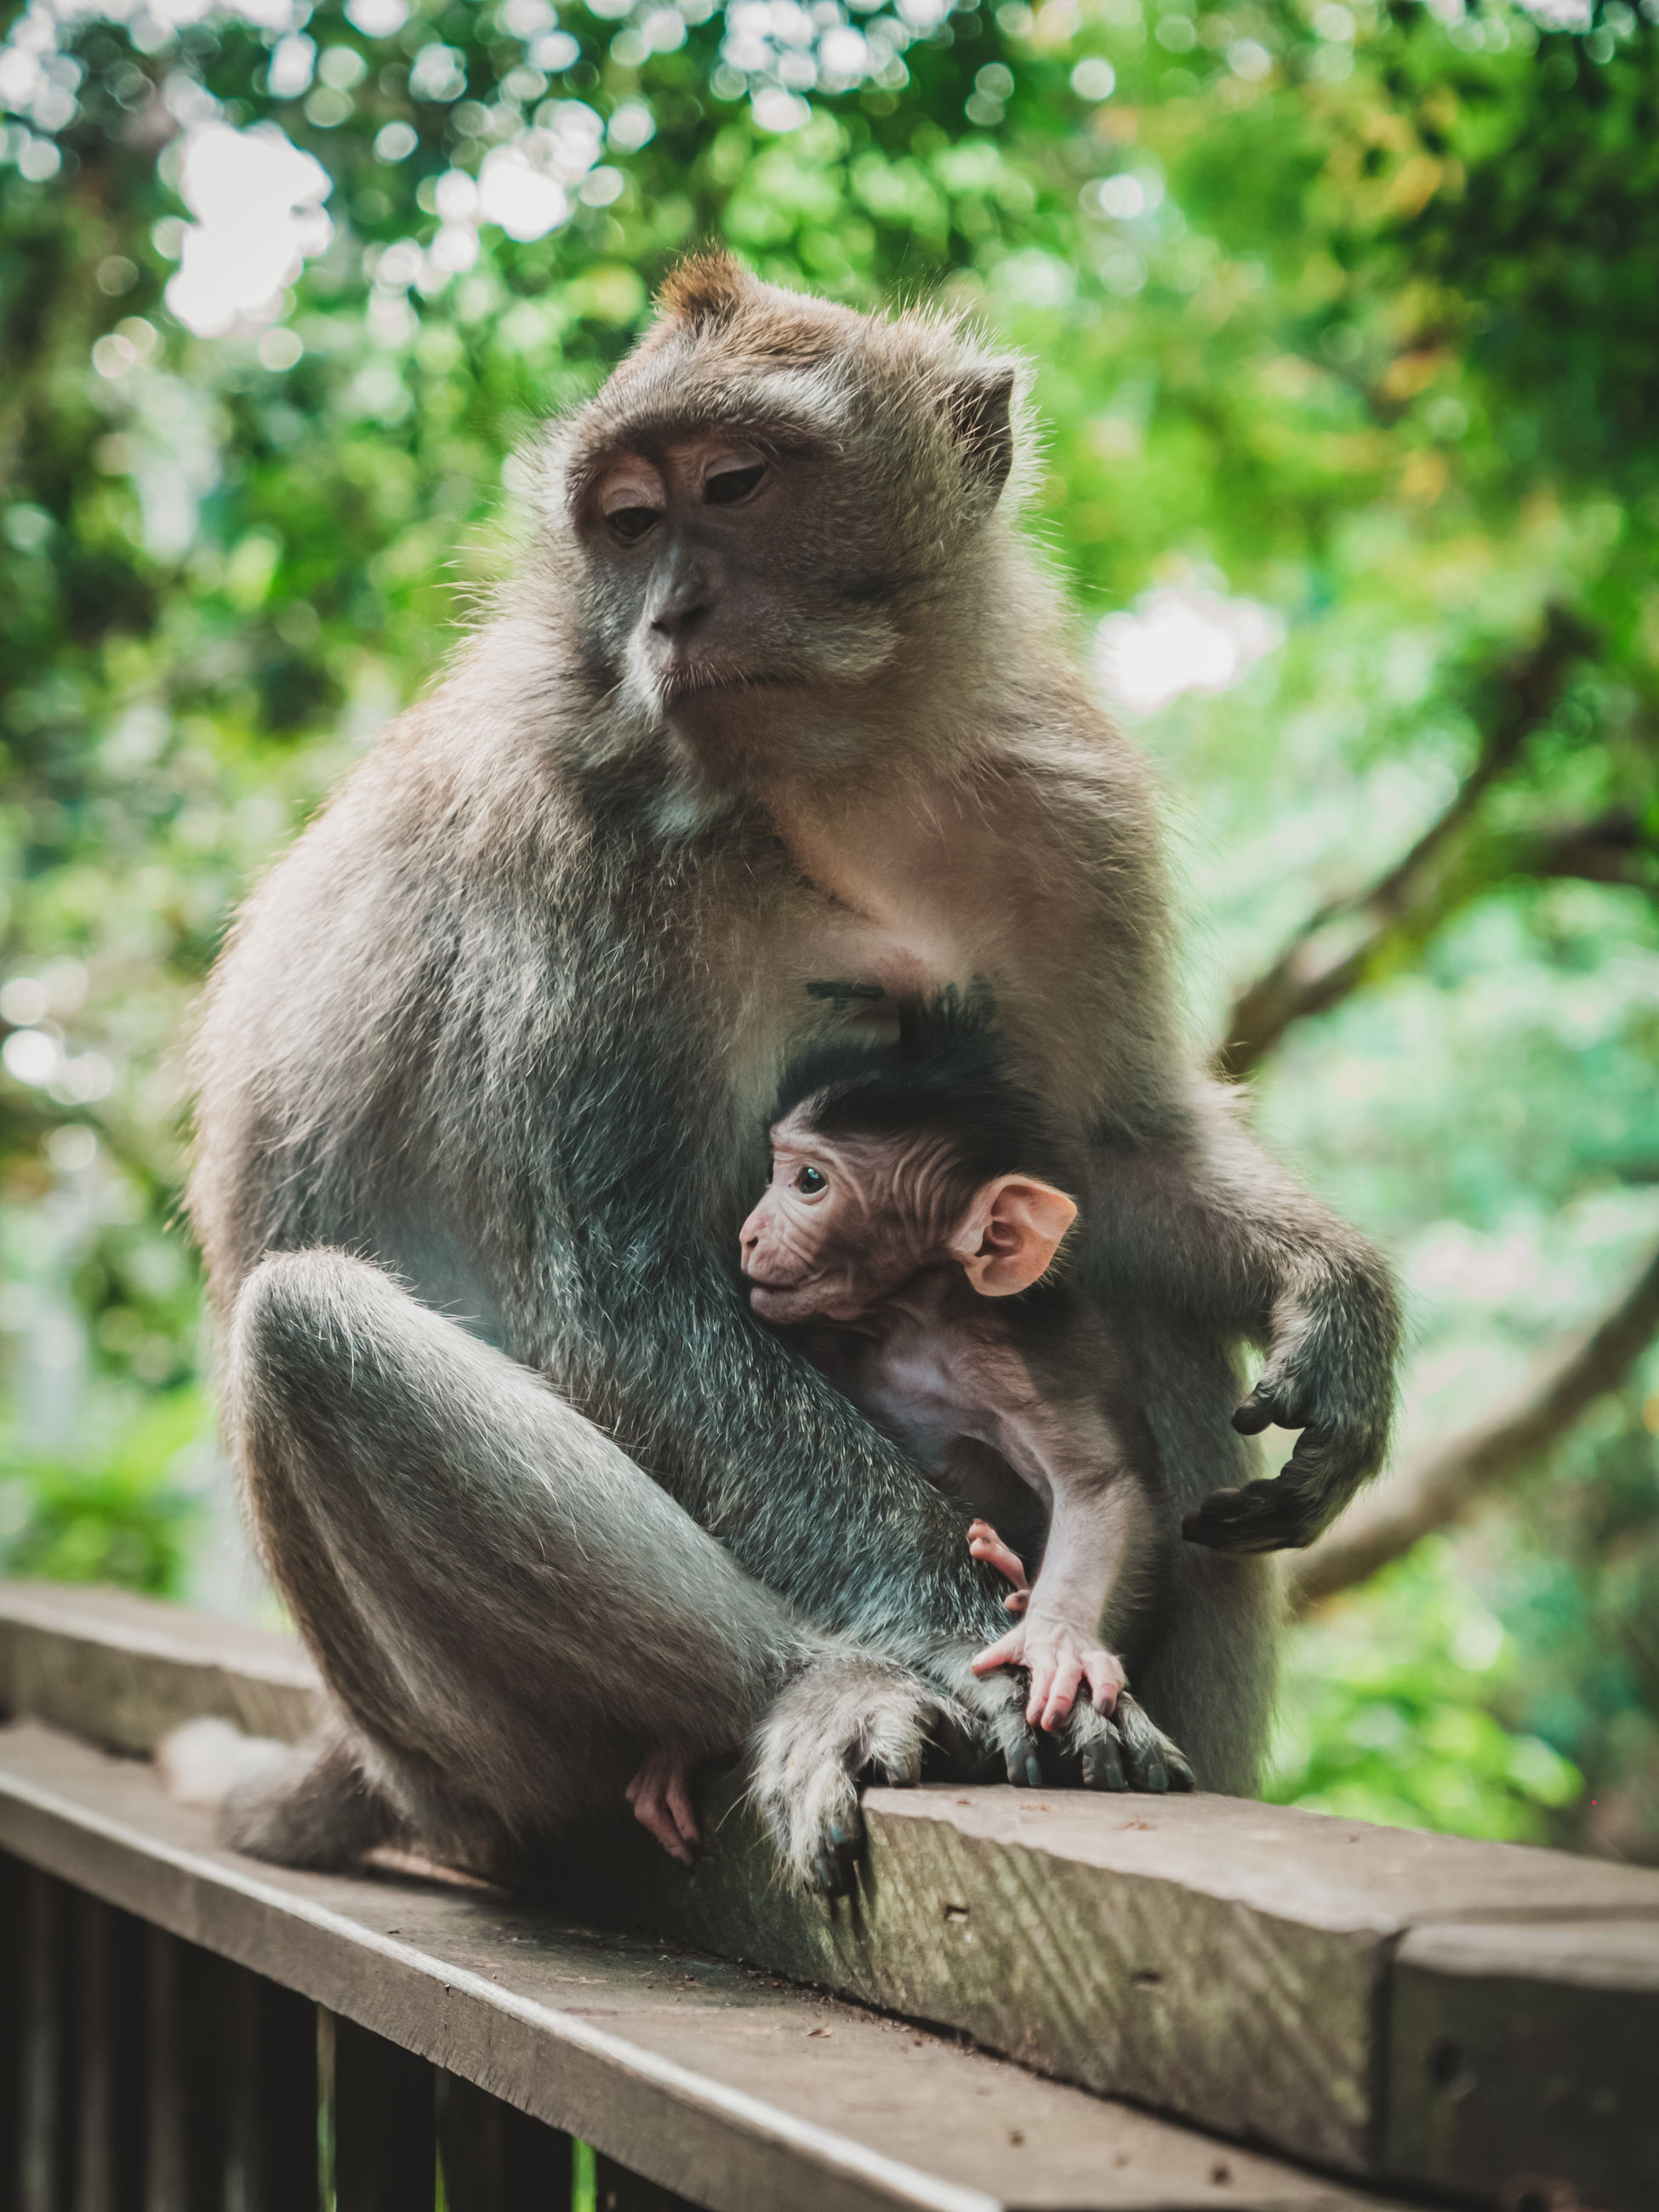 group of animals, animal wildlife, animal, mammal, animals in the wild, animal themes, young animal, two animals, animal family, vertebrate, tree, primate, monkey, togetherness, female animal, day, young, focus on foreground, baby, nature, outdoors, care